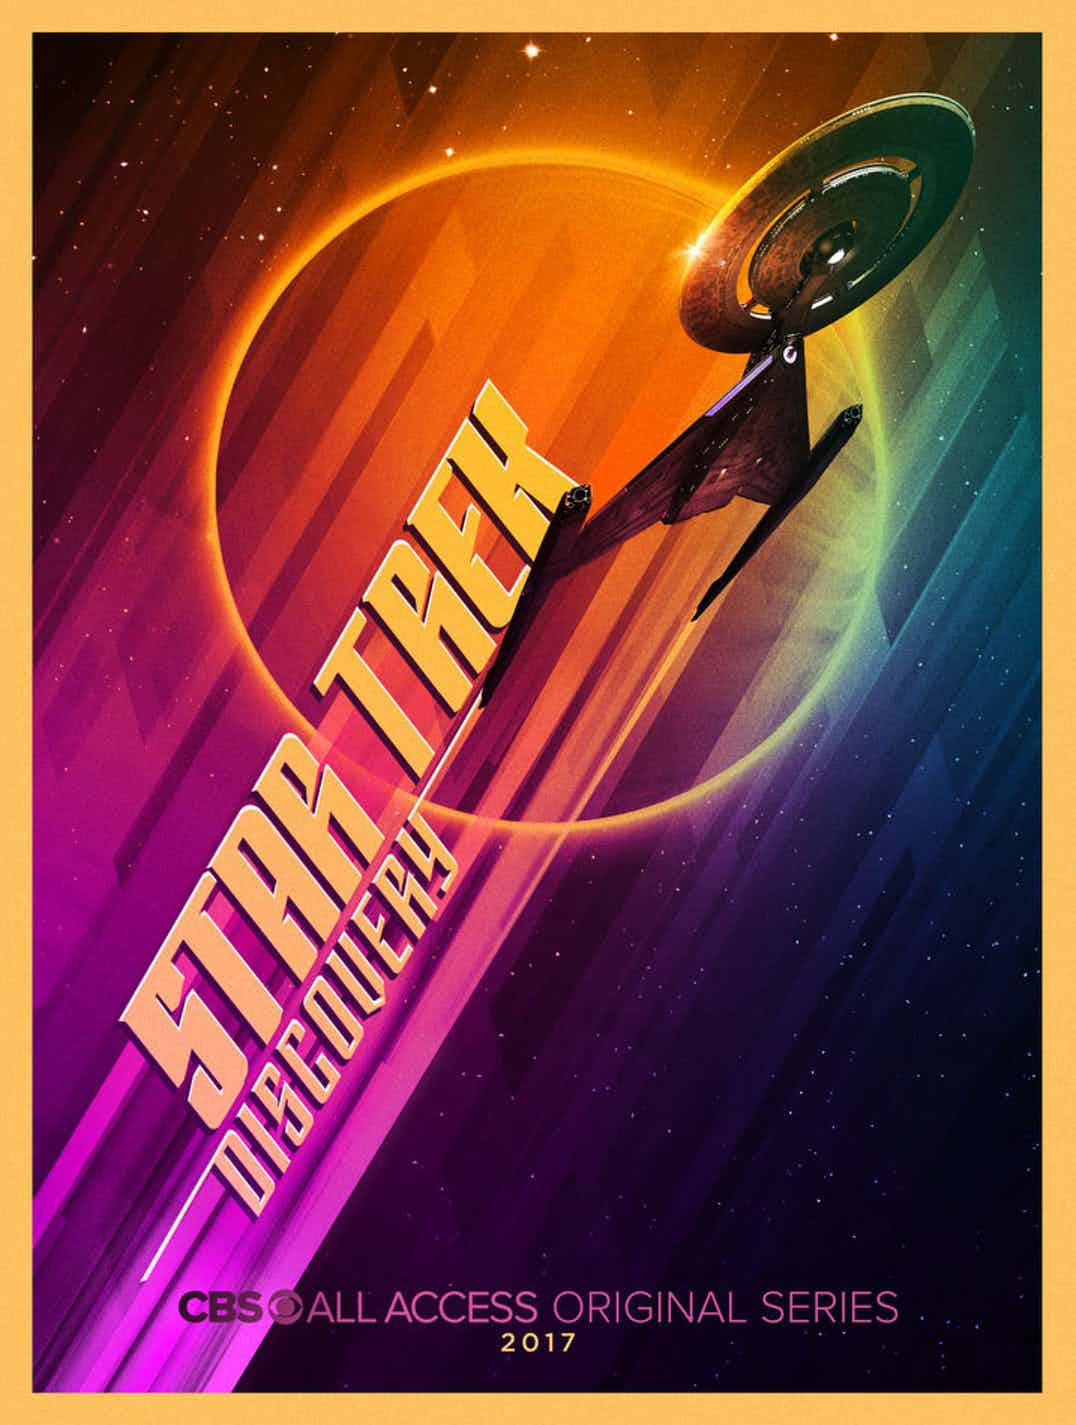 Star-Trek-Discovery-ComicCon-movieposter_2017